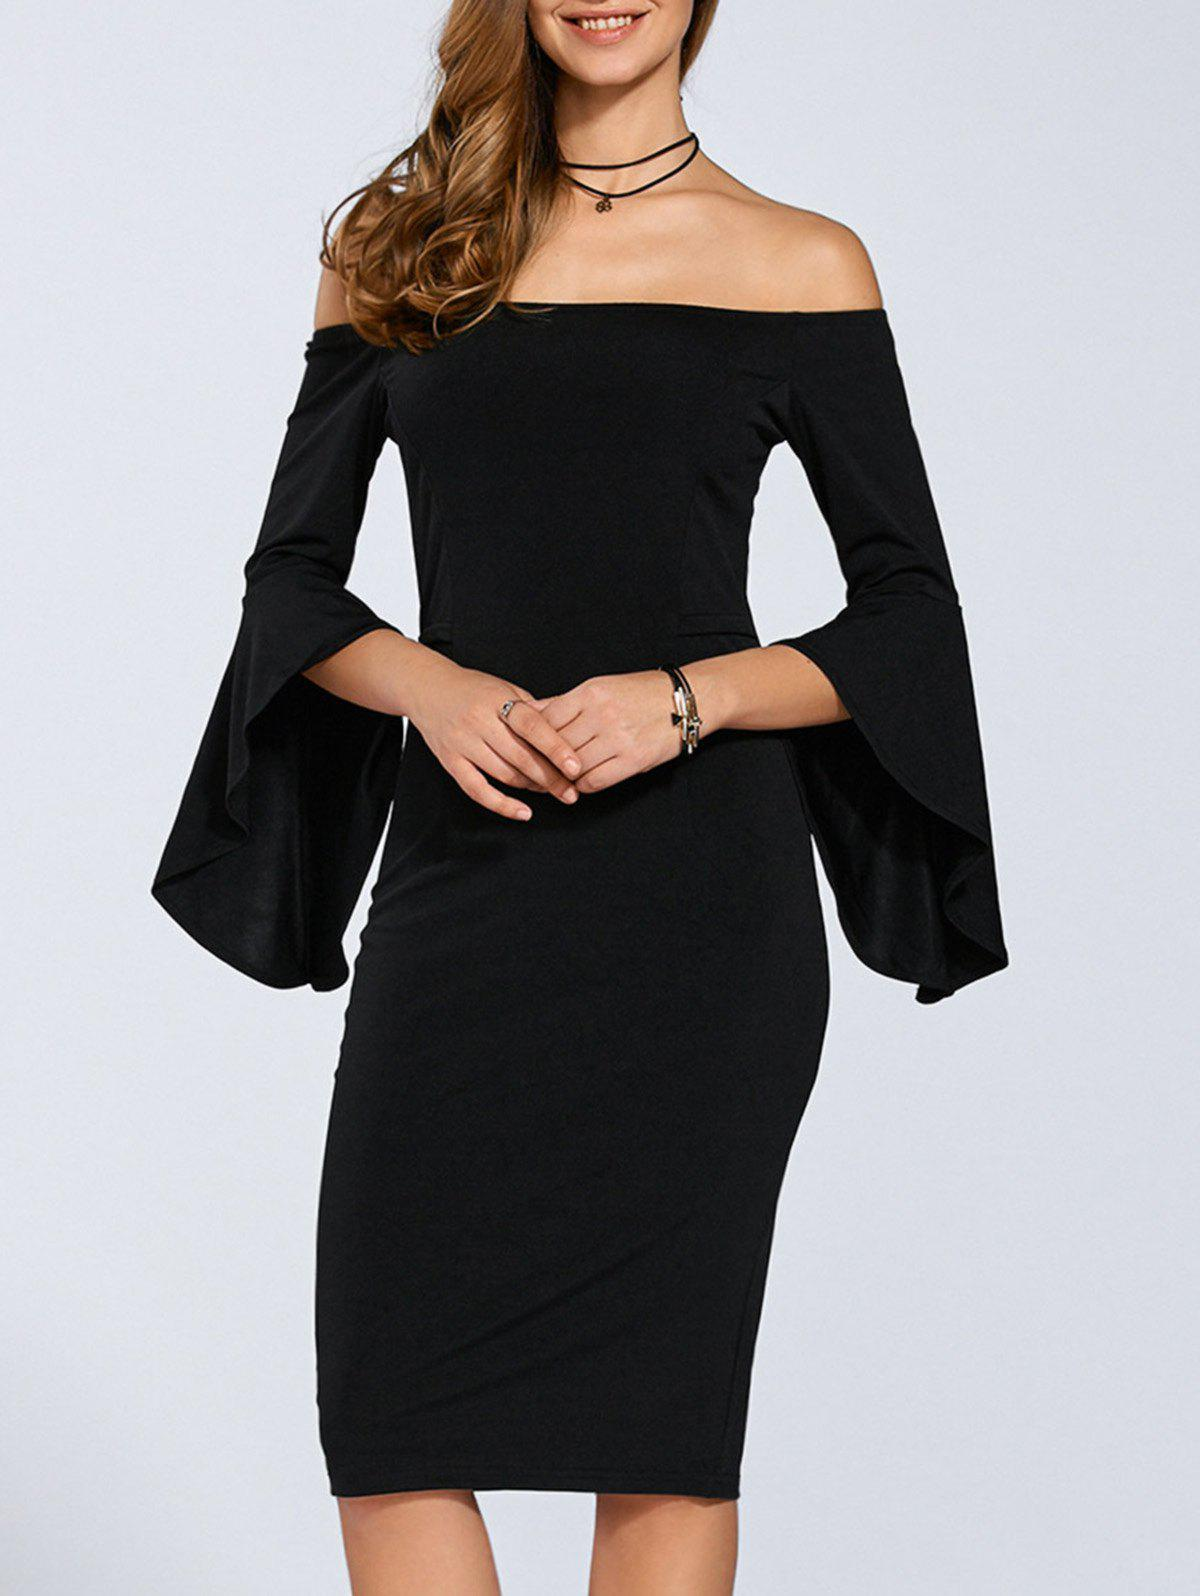 Autumn Flare Sleeve Off-The-Shoulder Dress - BLACK M